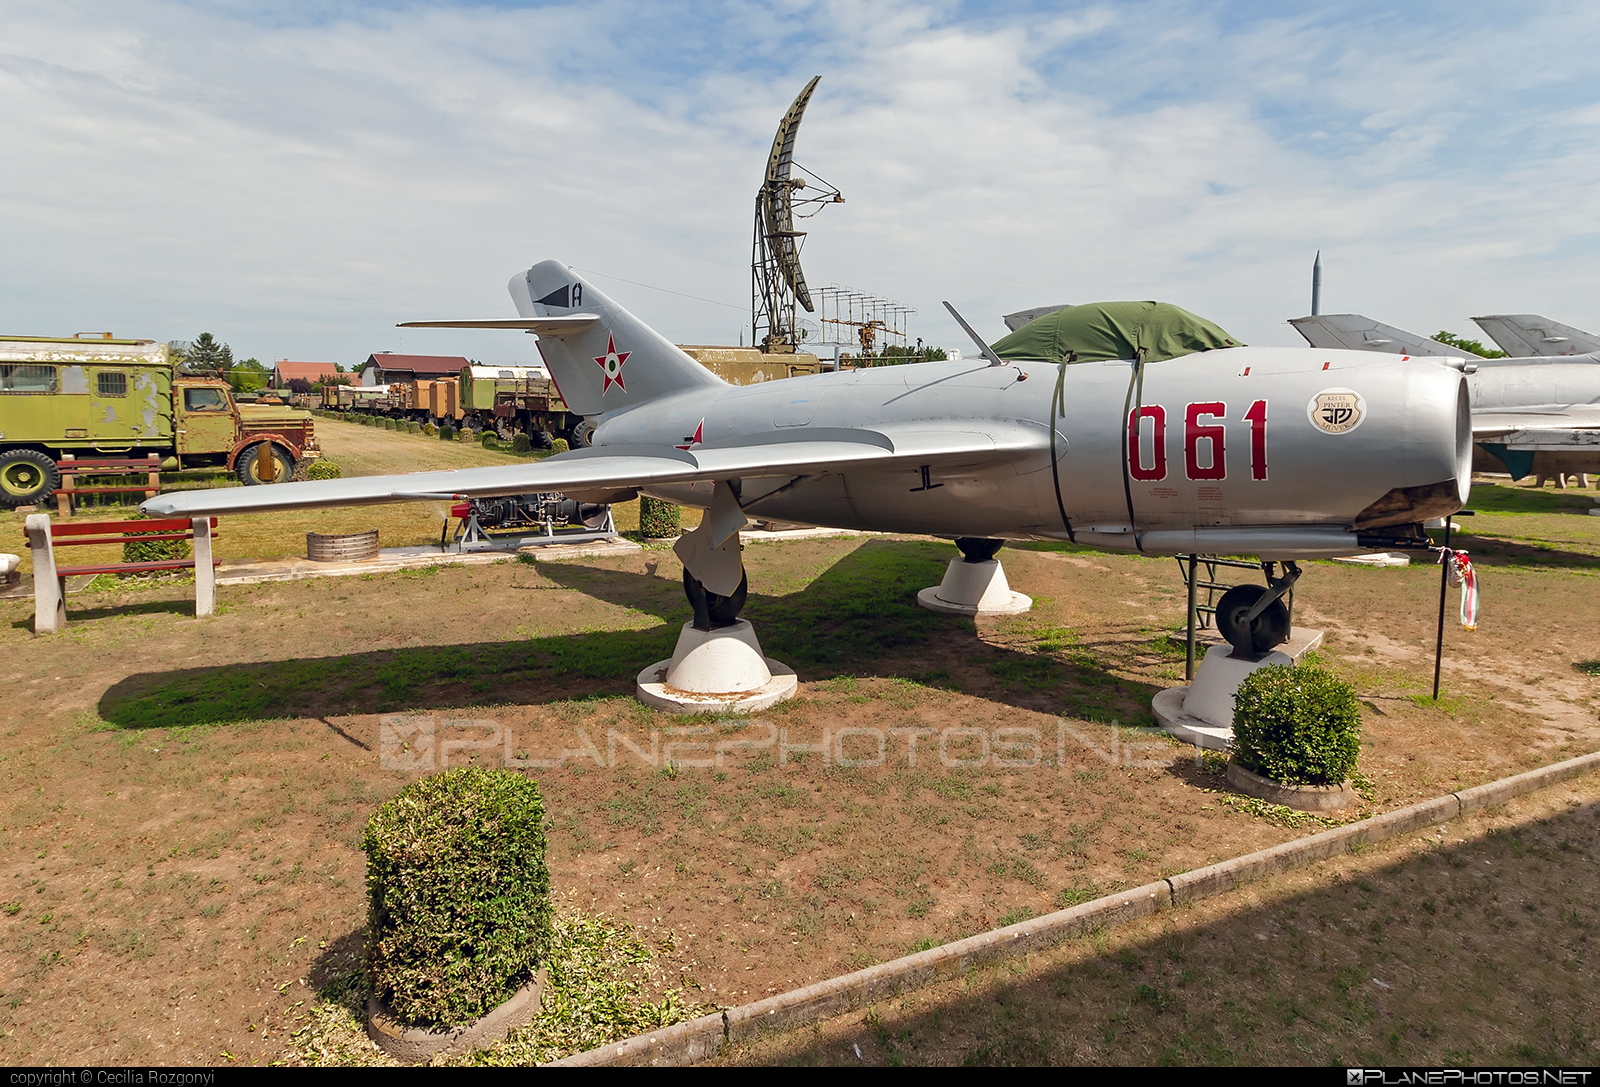 Mikoyan-Gurevich MiG-15bis - 061 operated by Magyar Néphadsereg (Hungarian People's Army) #hungarianpeoplesarmy #magyarnephadsereg #mig #mig15 #mig15bis #mikoyangurevich